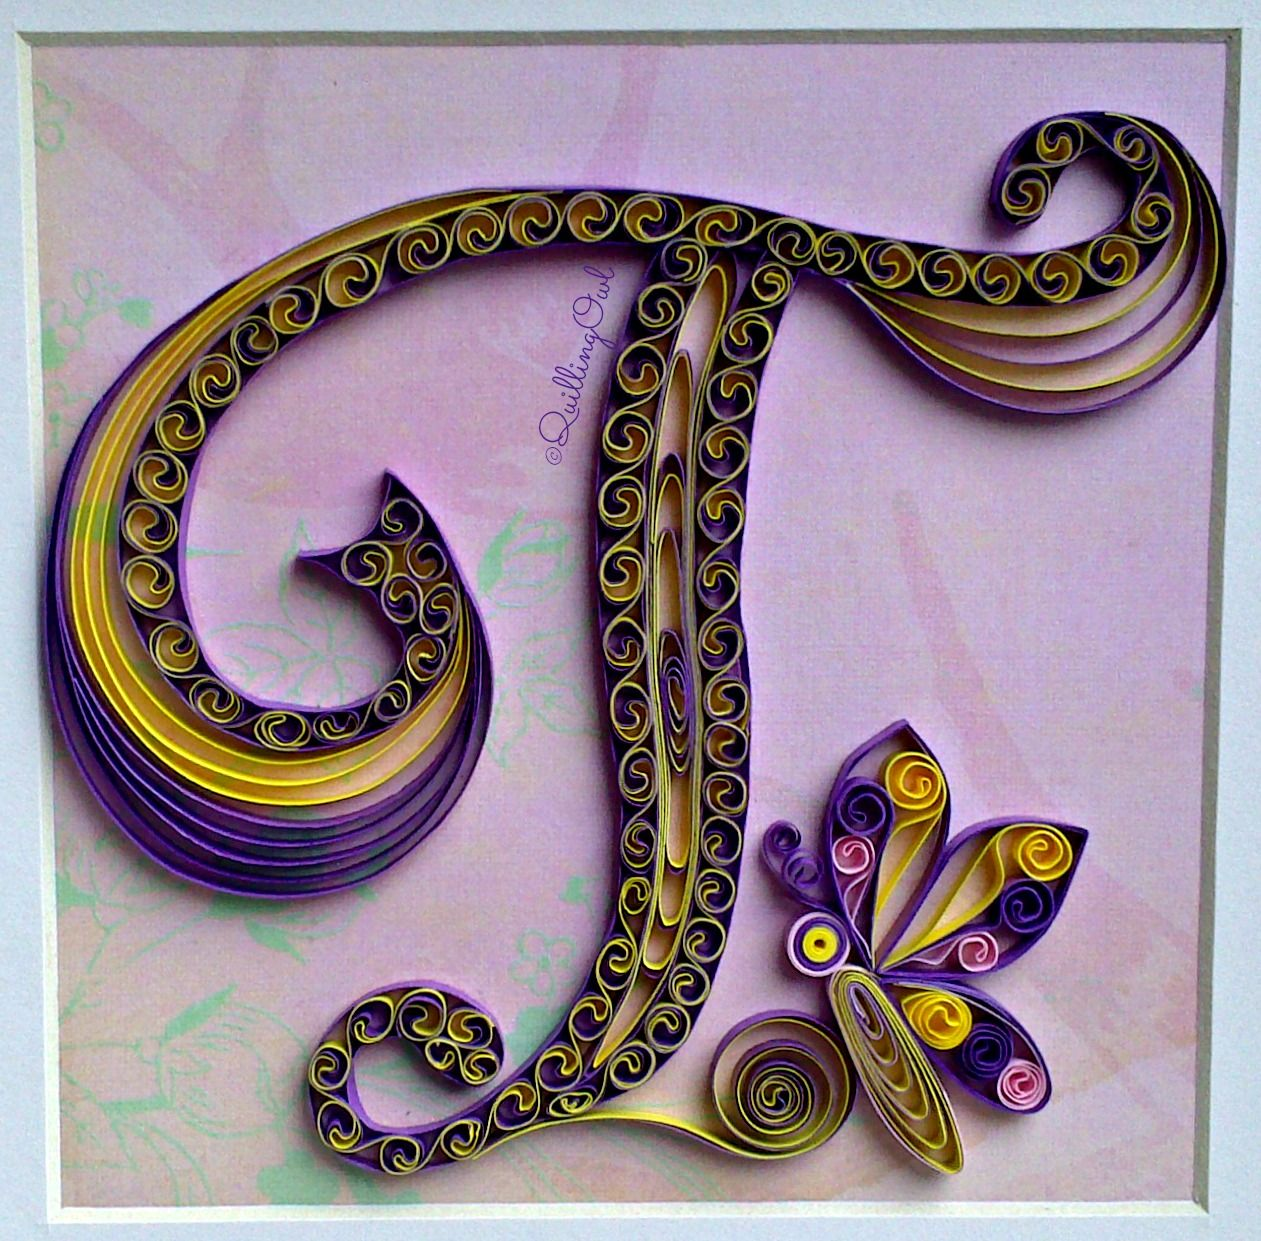 Quilled letter t created using 3mm strips of paper t is for quilled letter t created using 3mm strips of paper altavistaventures Gallery